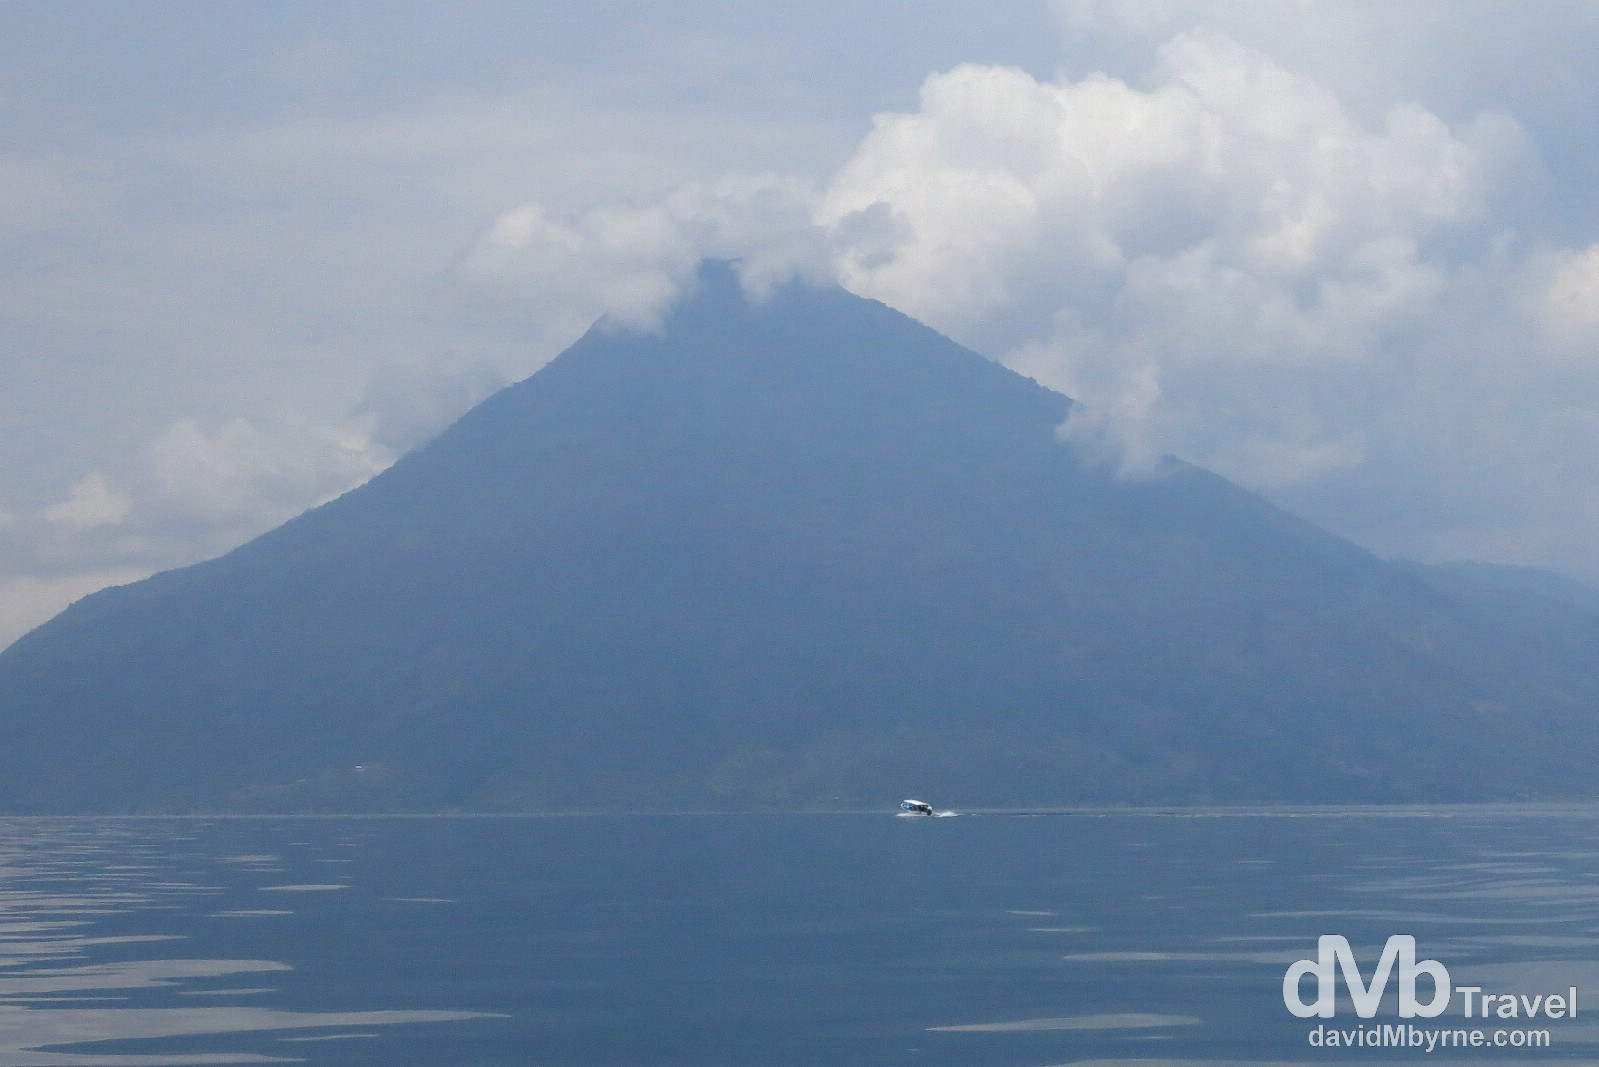 Boating near the base of the San Pedro Volcano on Lake Atitlan, Guatemala. May 24th 2013.